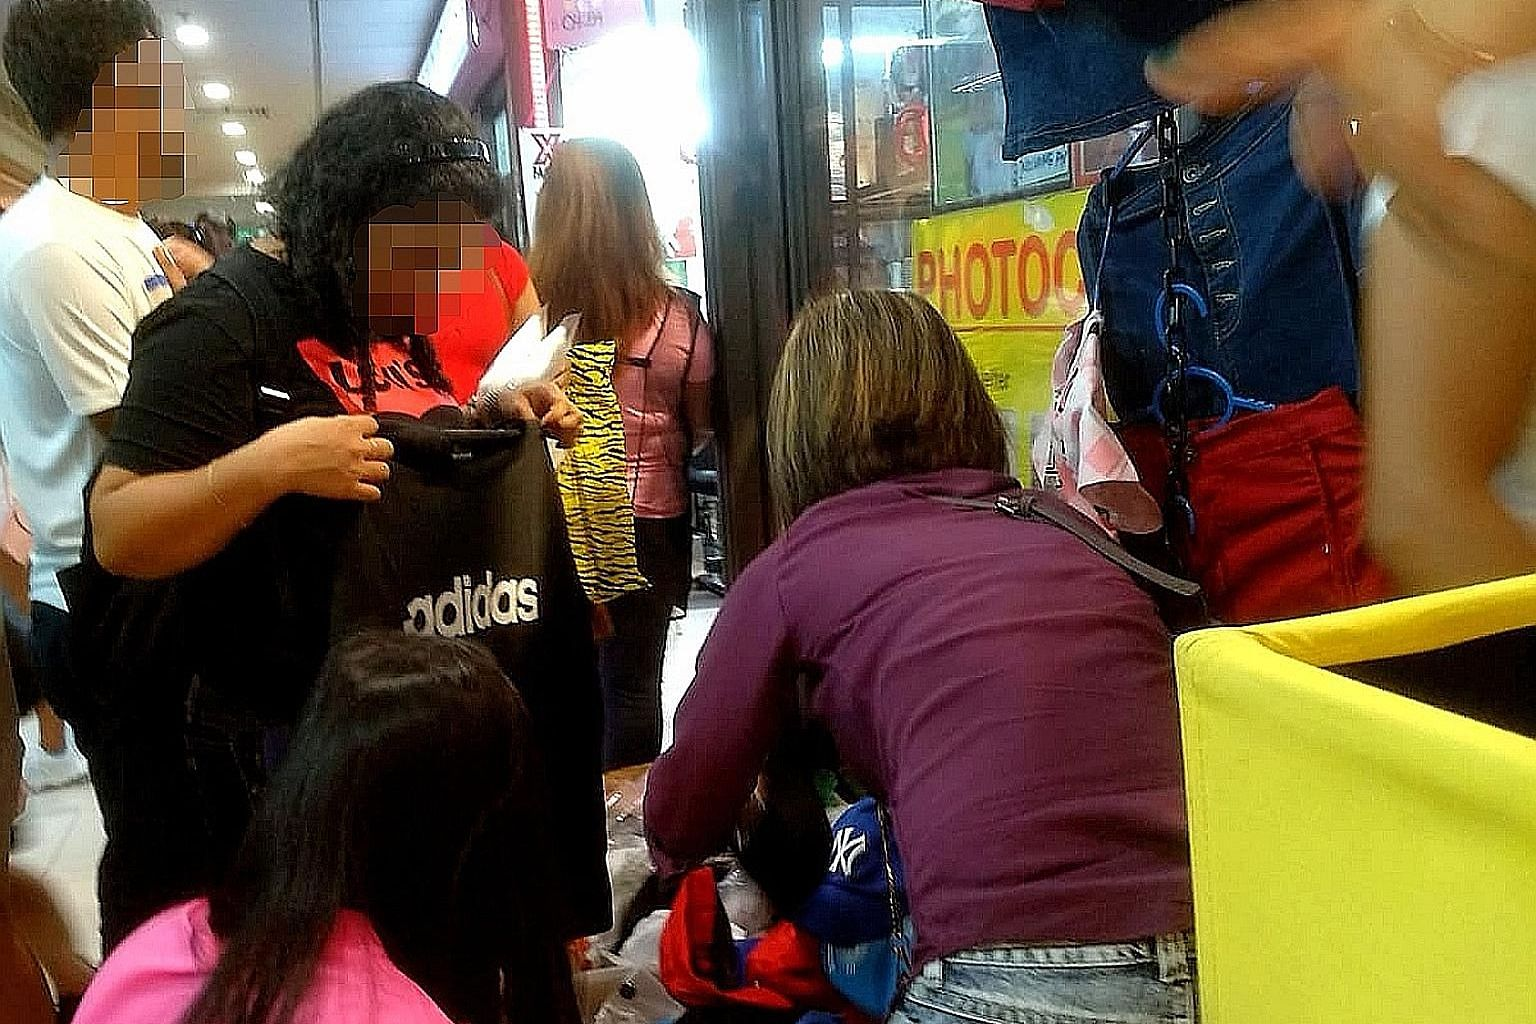 Counterfeit apparel of famous brands such as Adidas, Under Armour and Levi's being sold outside a fourth-storey shop at Lucky Plaza. Those found guilty of distributing goods with falsely applied trademarks for the purpose of trade can be jailed up to